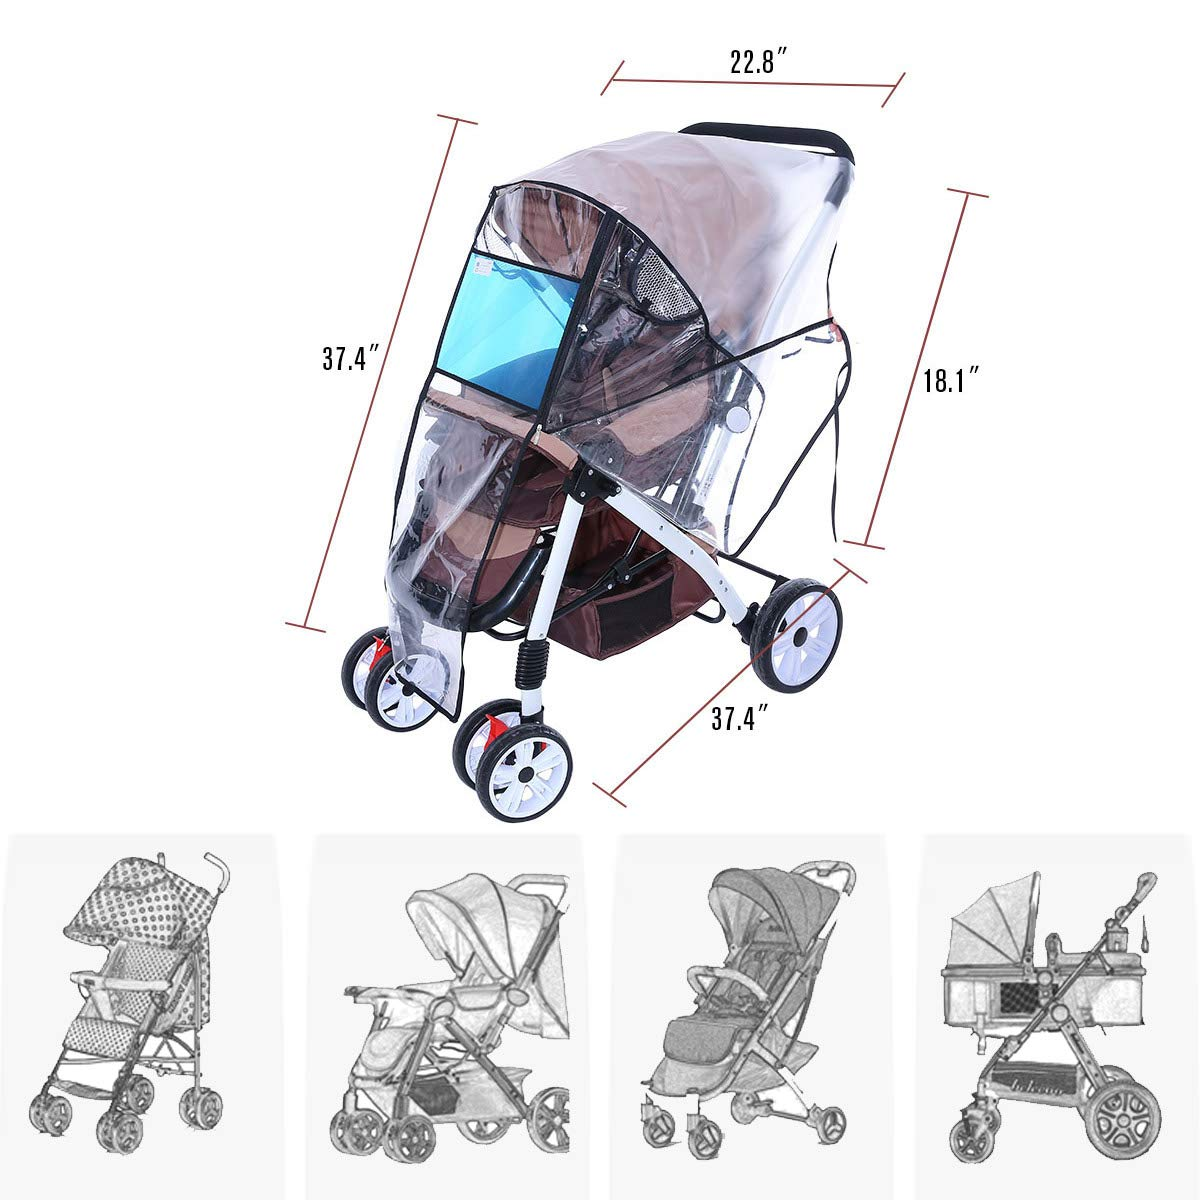 Hrzeem Stroller Rain Cover Stroller Cover Universal Baby Stroller Weather Shield with Storage Pouch EVA Clear Zip Front Opening Waterproof Windproof Protection Easy to Install for Outdoor Use (Black) by Hrzeem (Image #5)